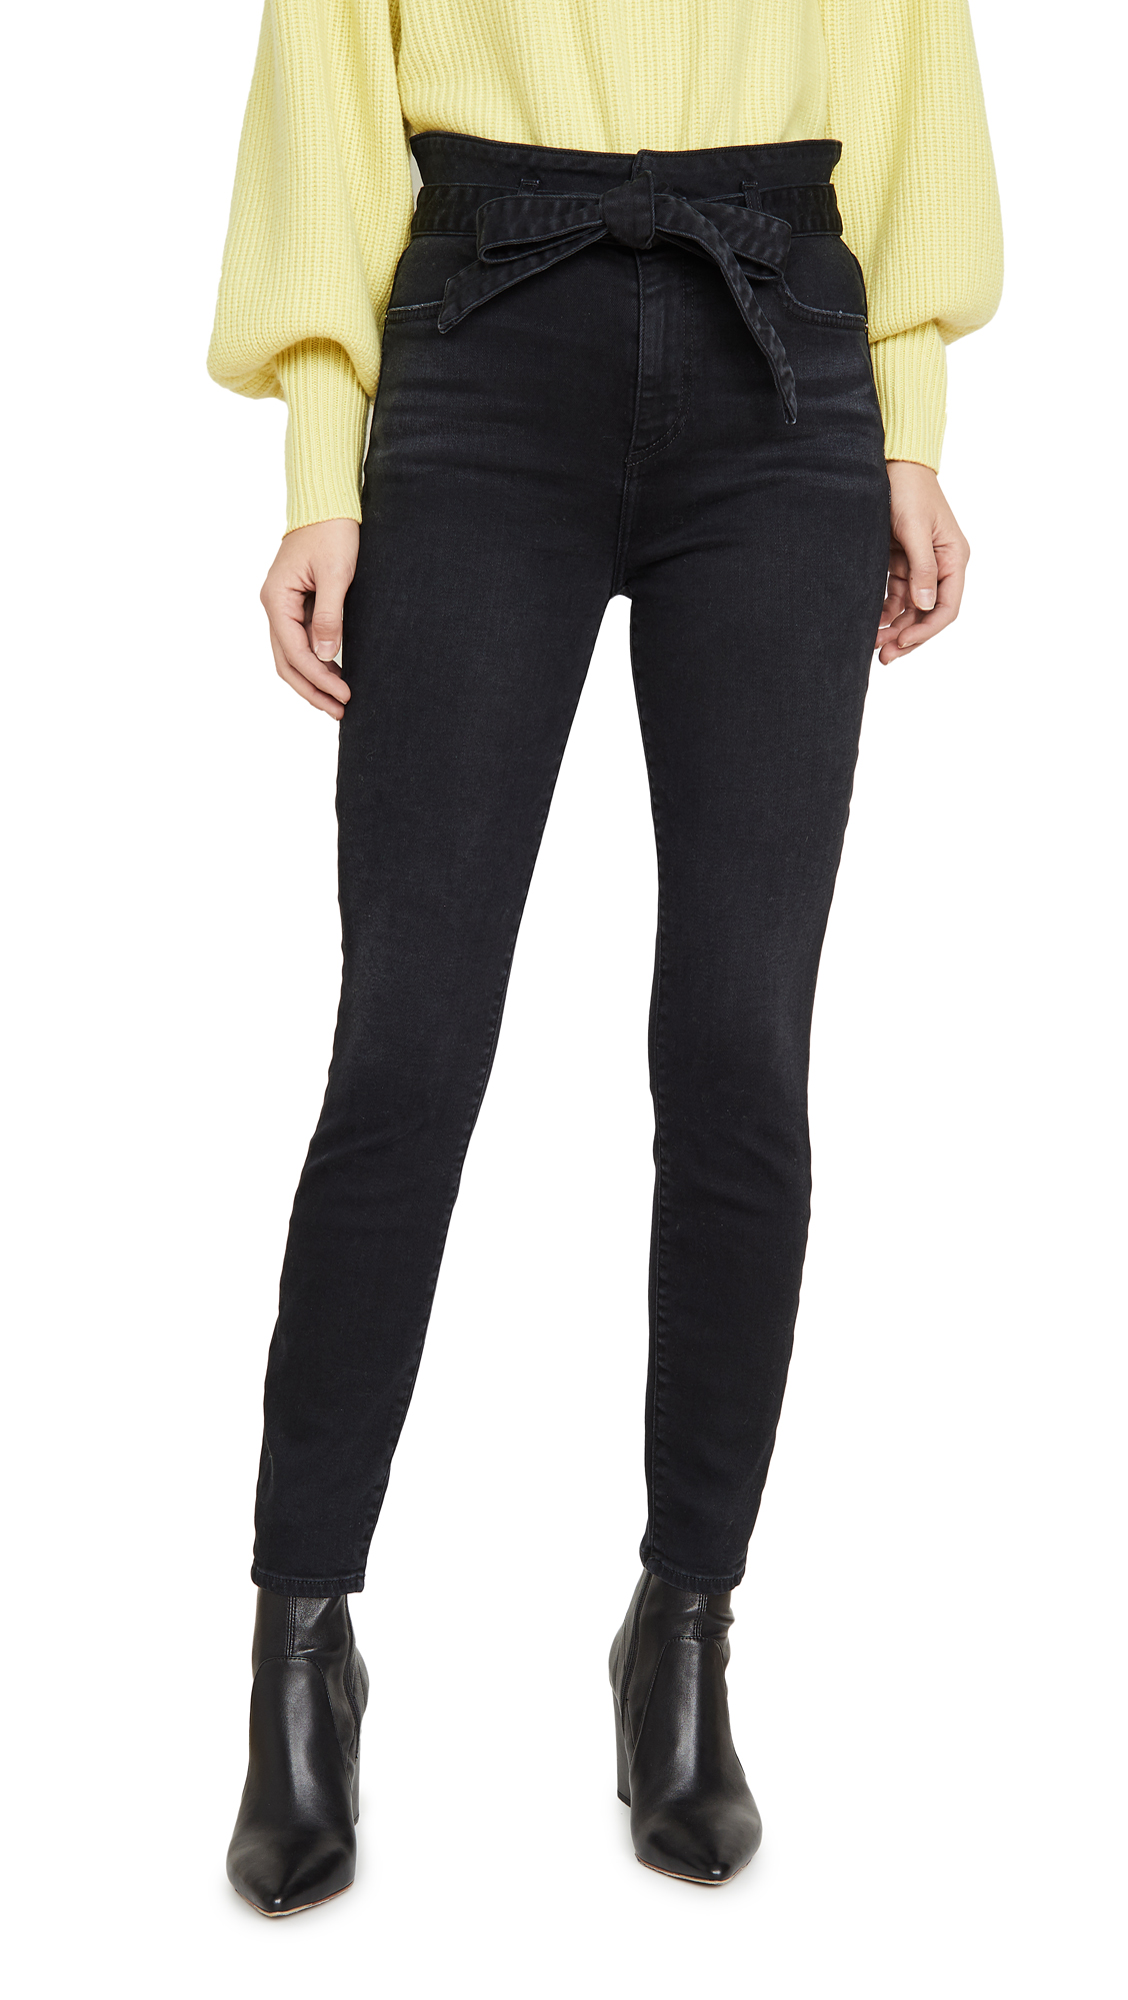 Buy ALICE + OLIVIA JEANS online - photo of ALICE + OLIVIA JEANS Good High Rise Skinny Jeans